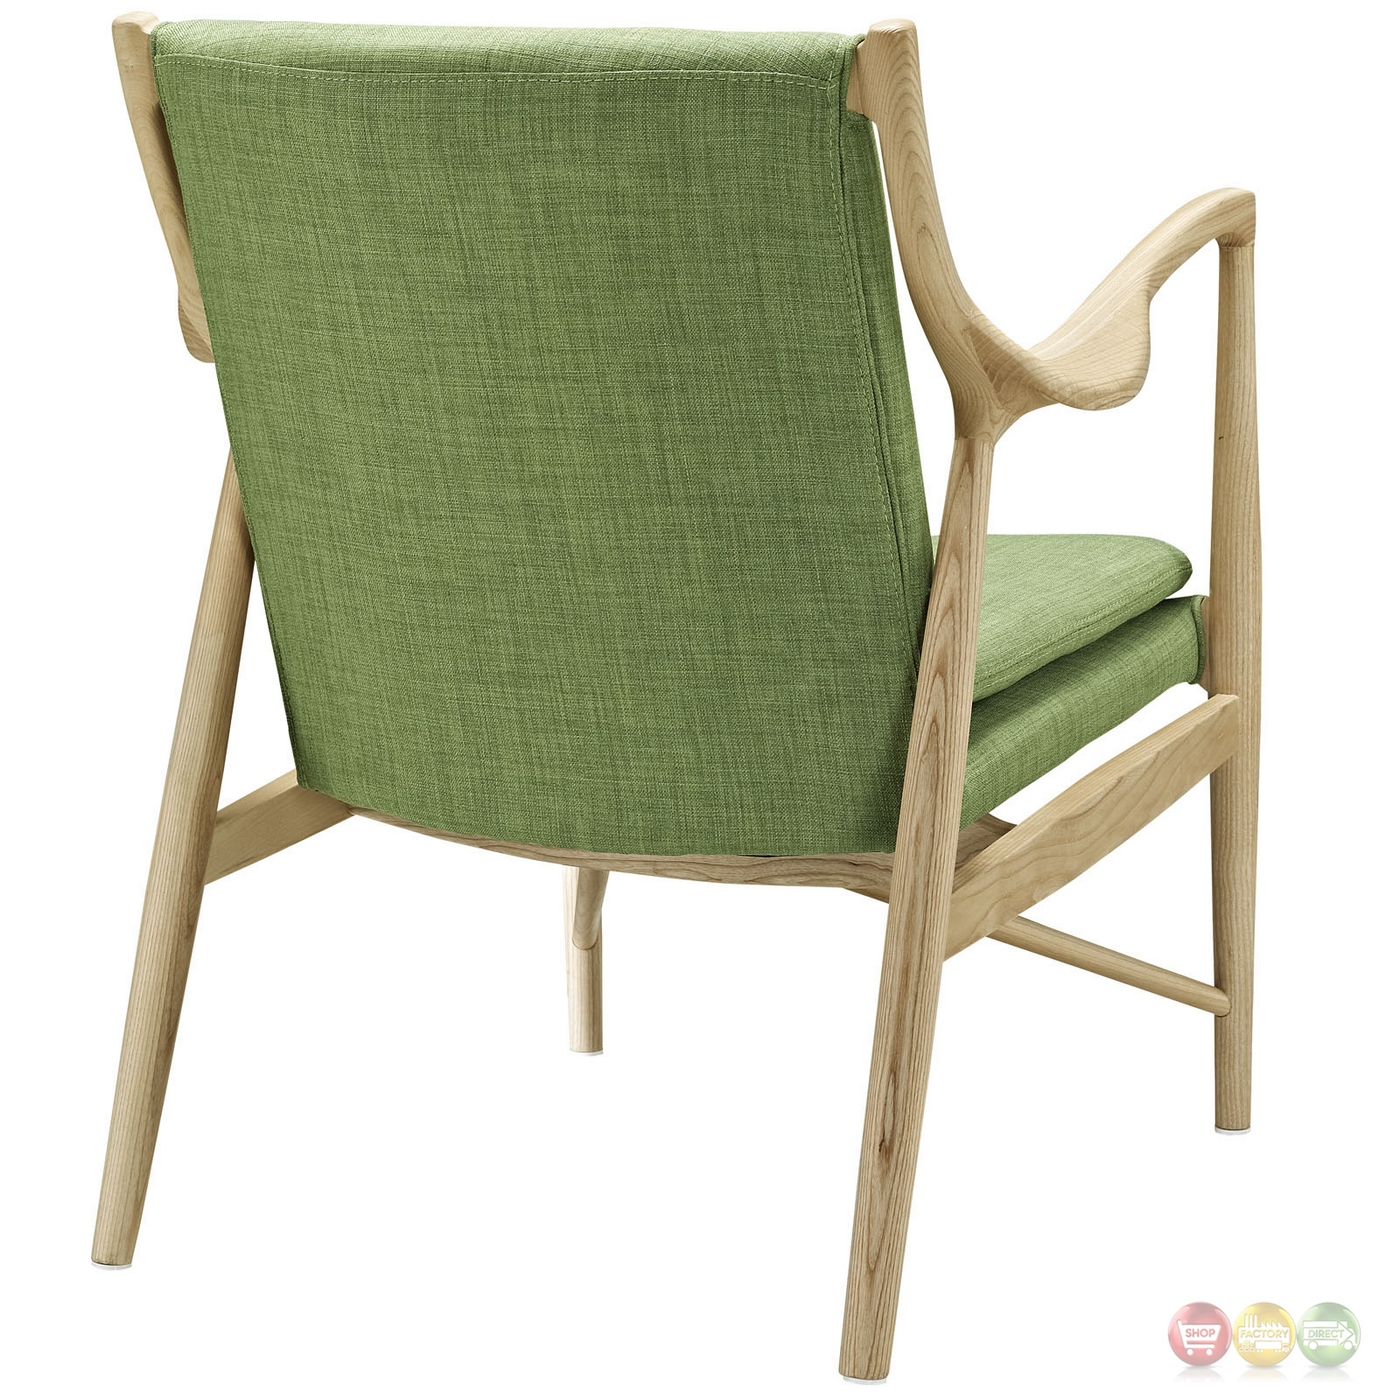 green lounge chair banquet covers ebay makeshift modern upholstered with ash wood